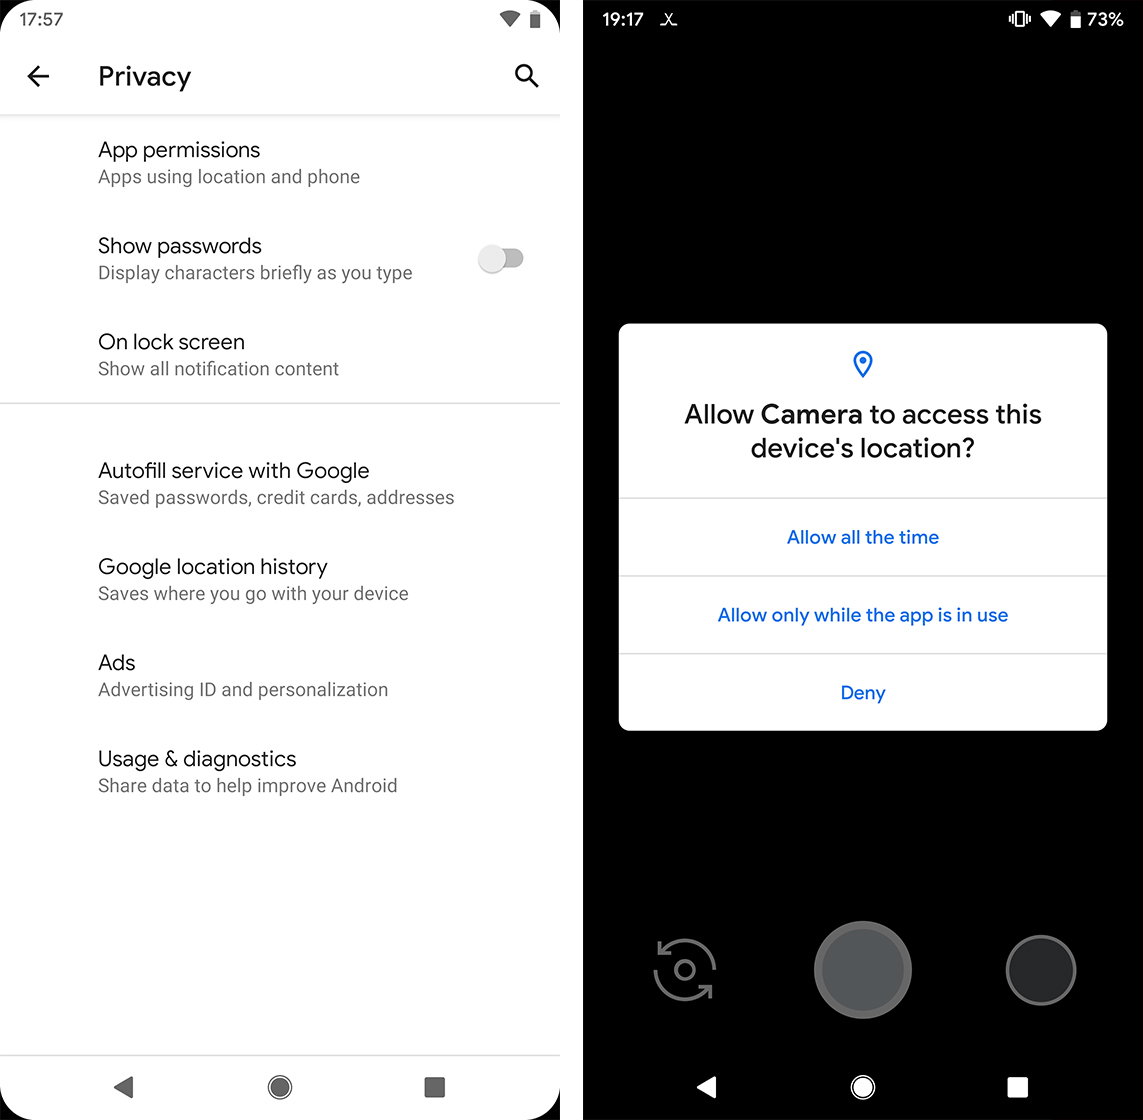 Android Q privacy and location